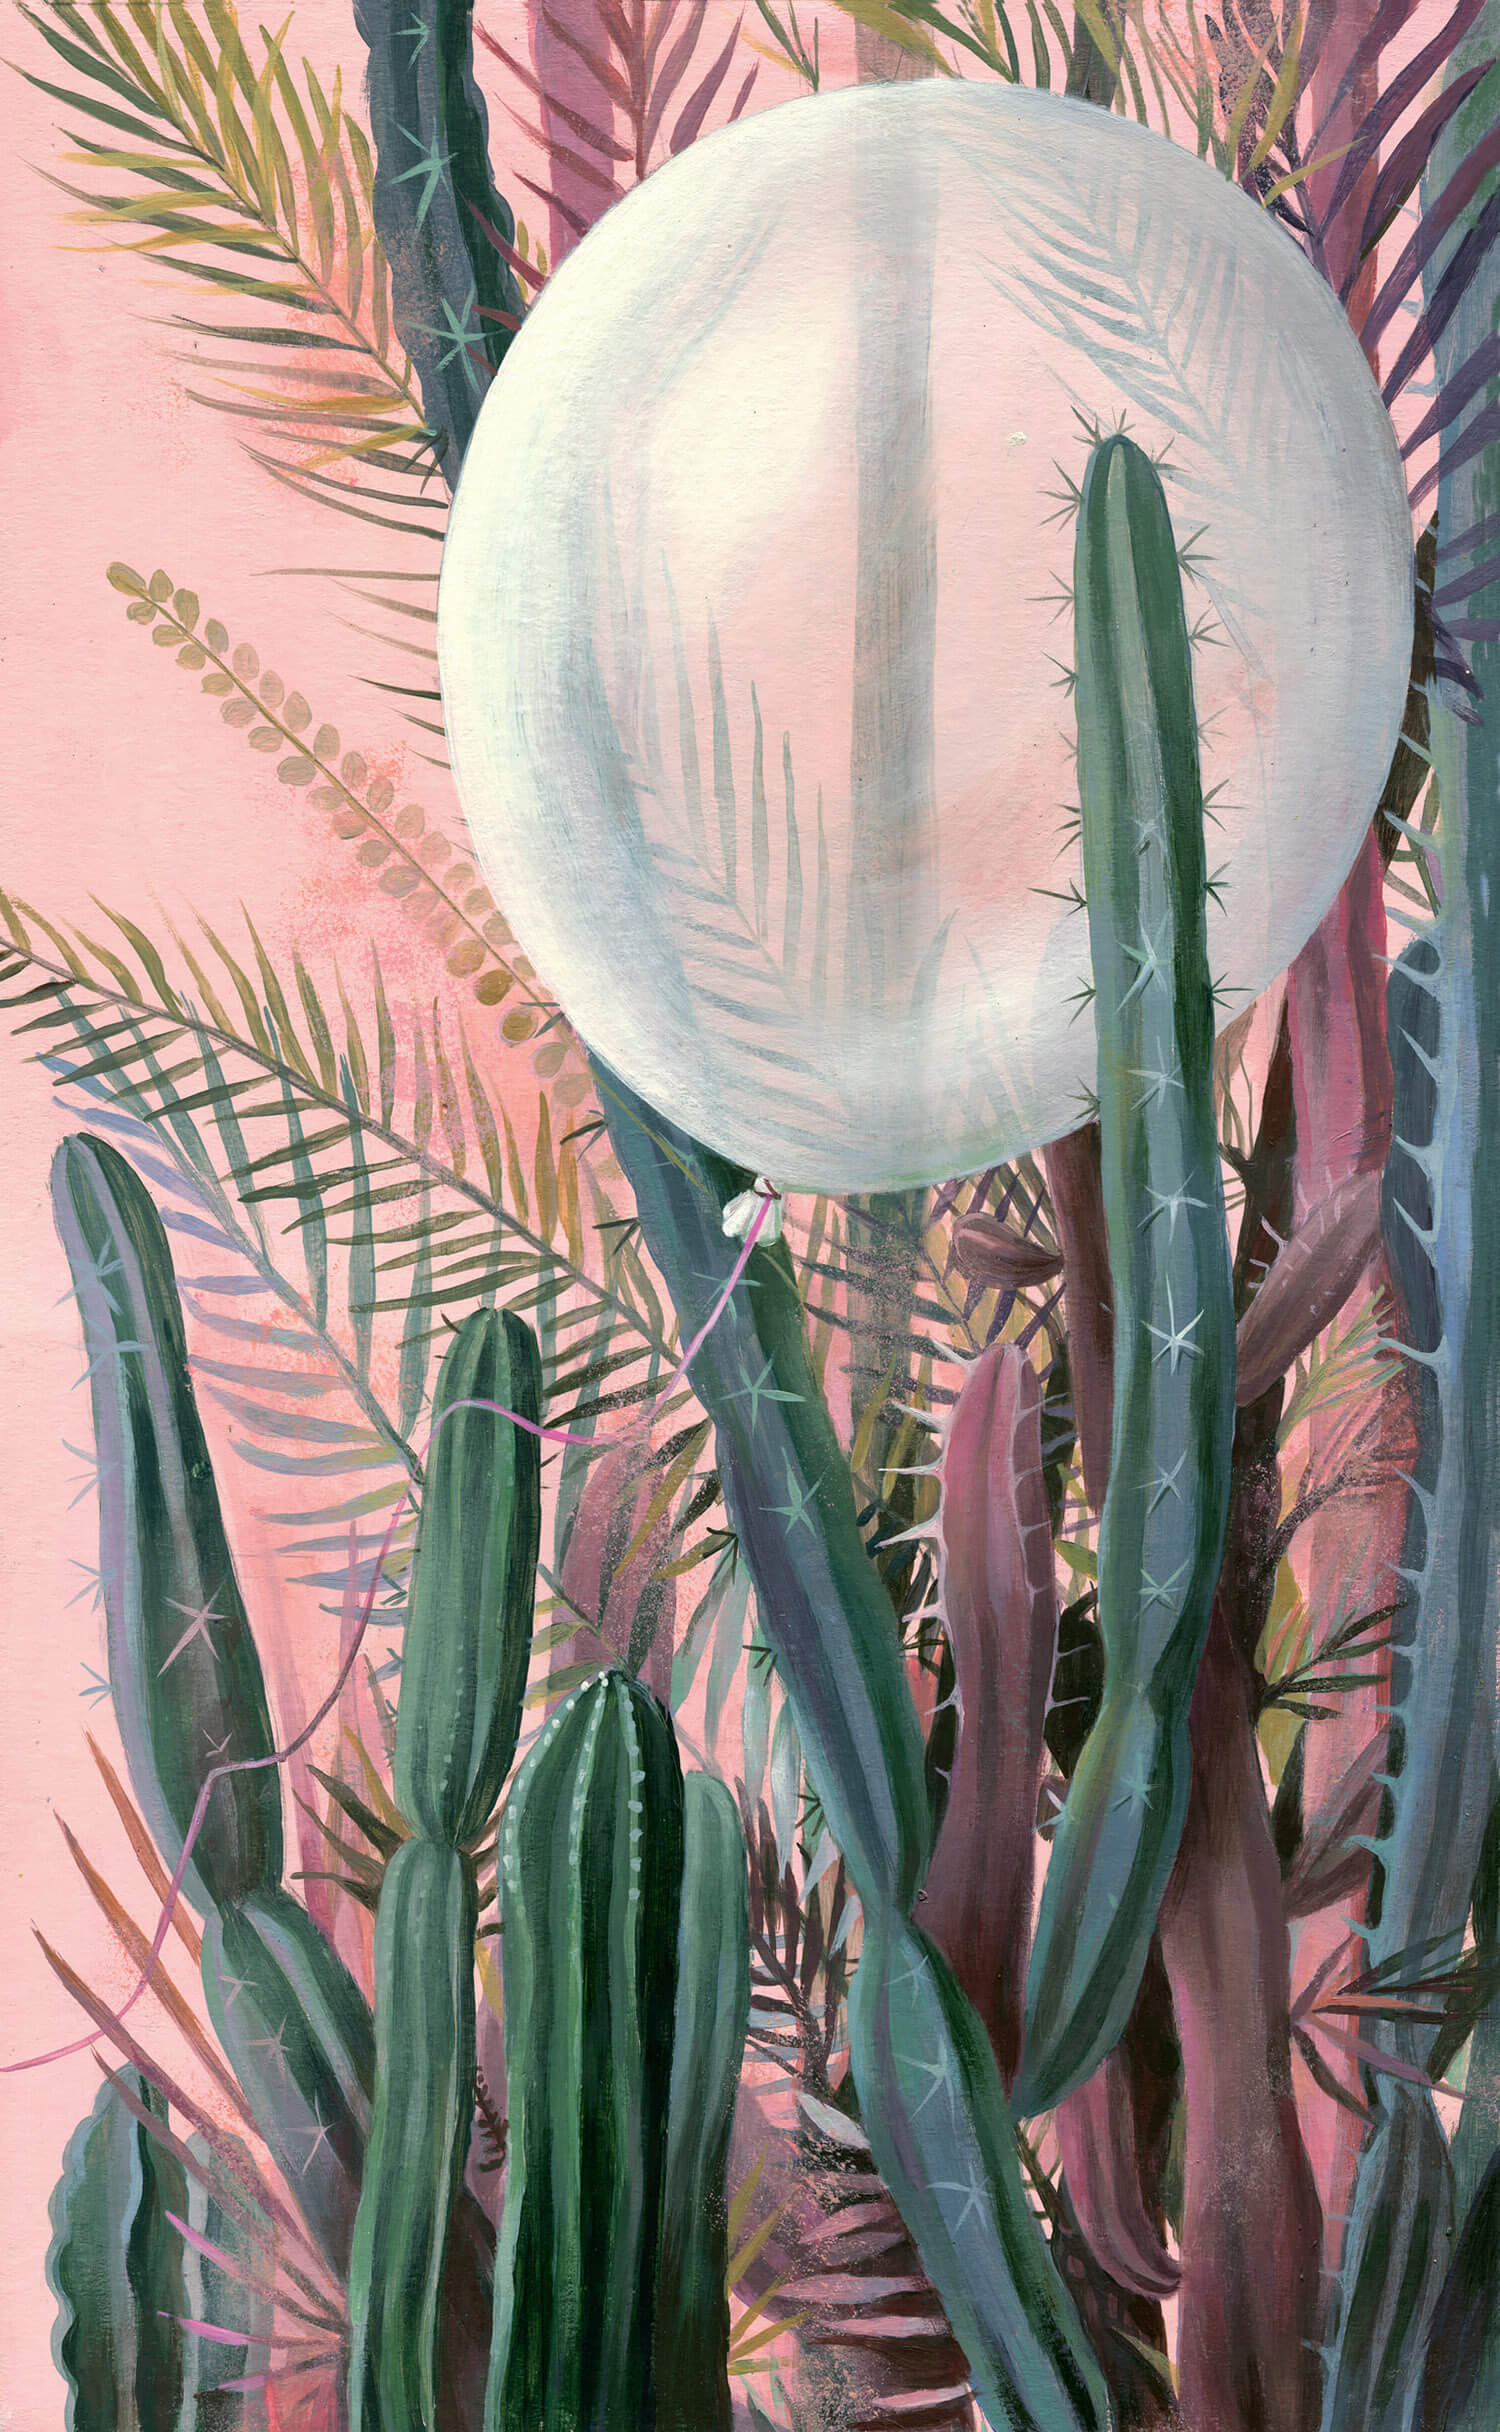 balloon among cacti